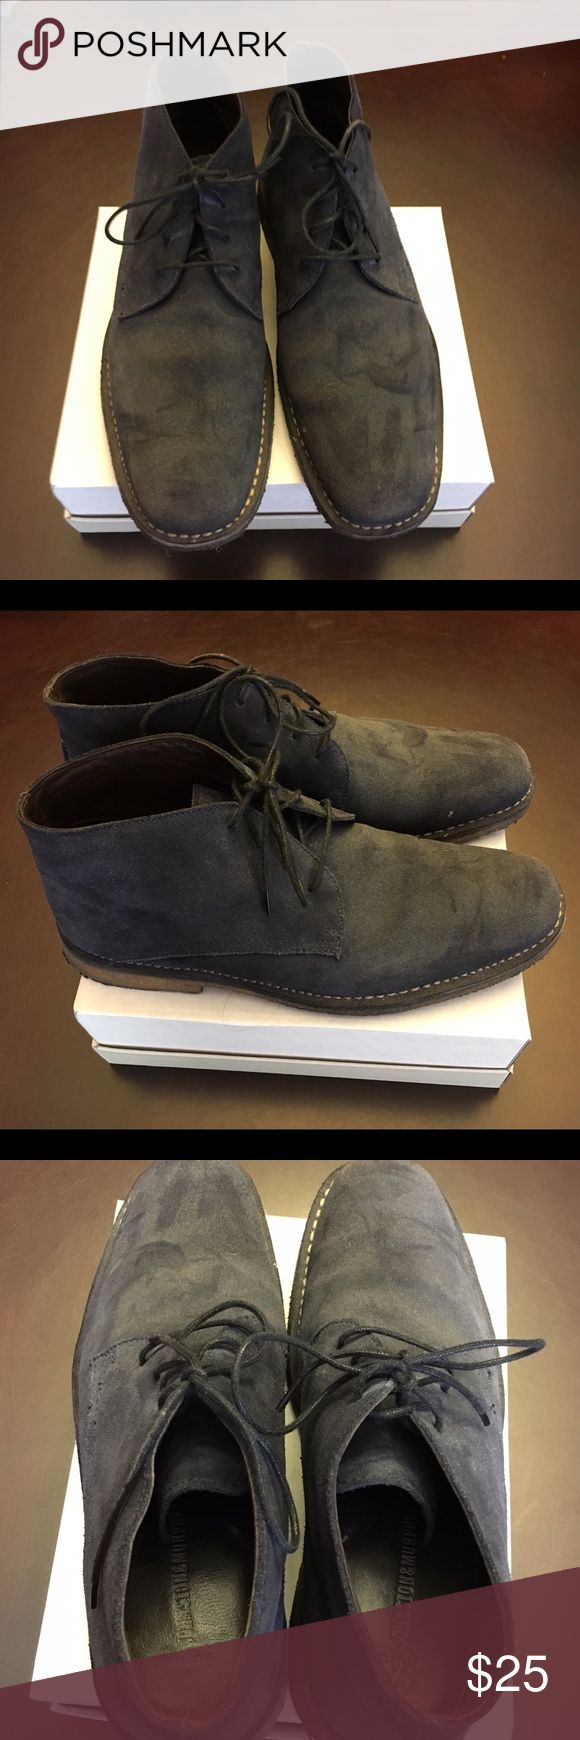 Johnston & Murphy Suede Shoes Johnston & Murphy Suede Shoes.  Great condition, worn a few times.  Made of sheep skin. Size 10.5 Johnston & Murphy Shoes